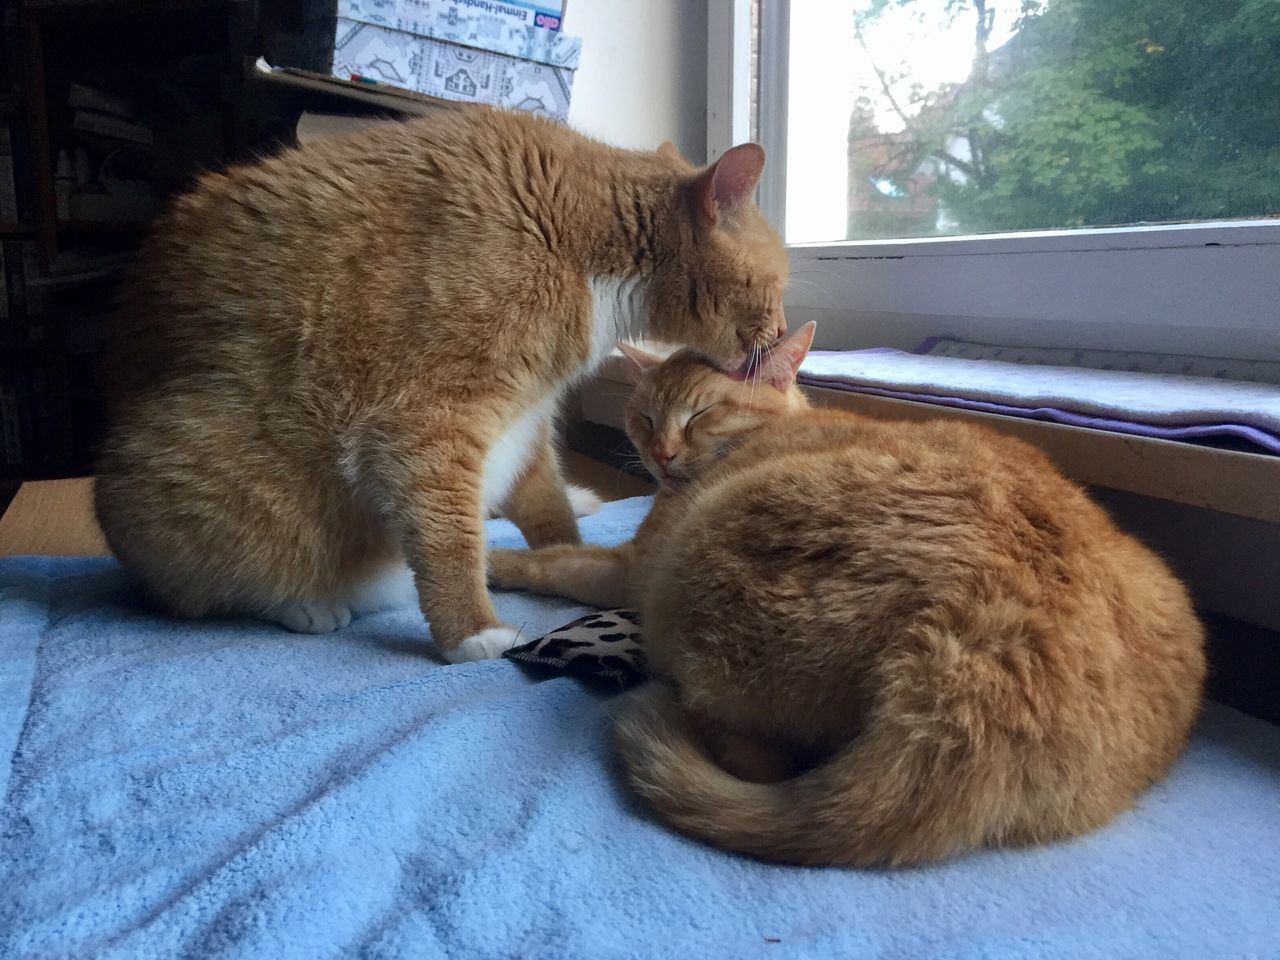 domestic cat, pets, animal themes, domestic animals, mammal, indoors, one animal, feline, cat, no people, relaxation, ginger cat, day, lying down, close-up